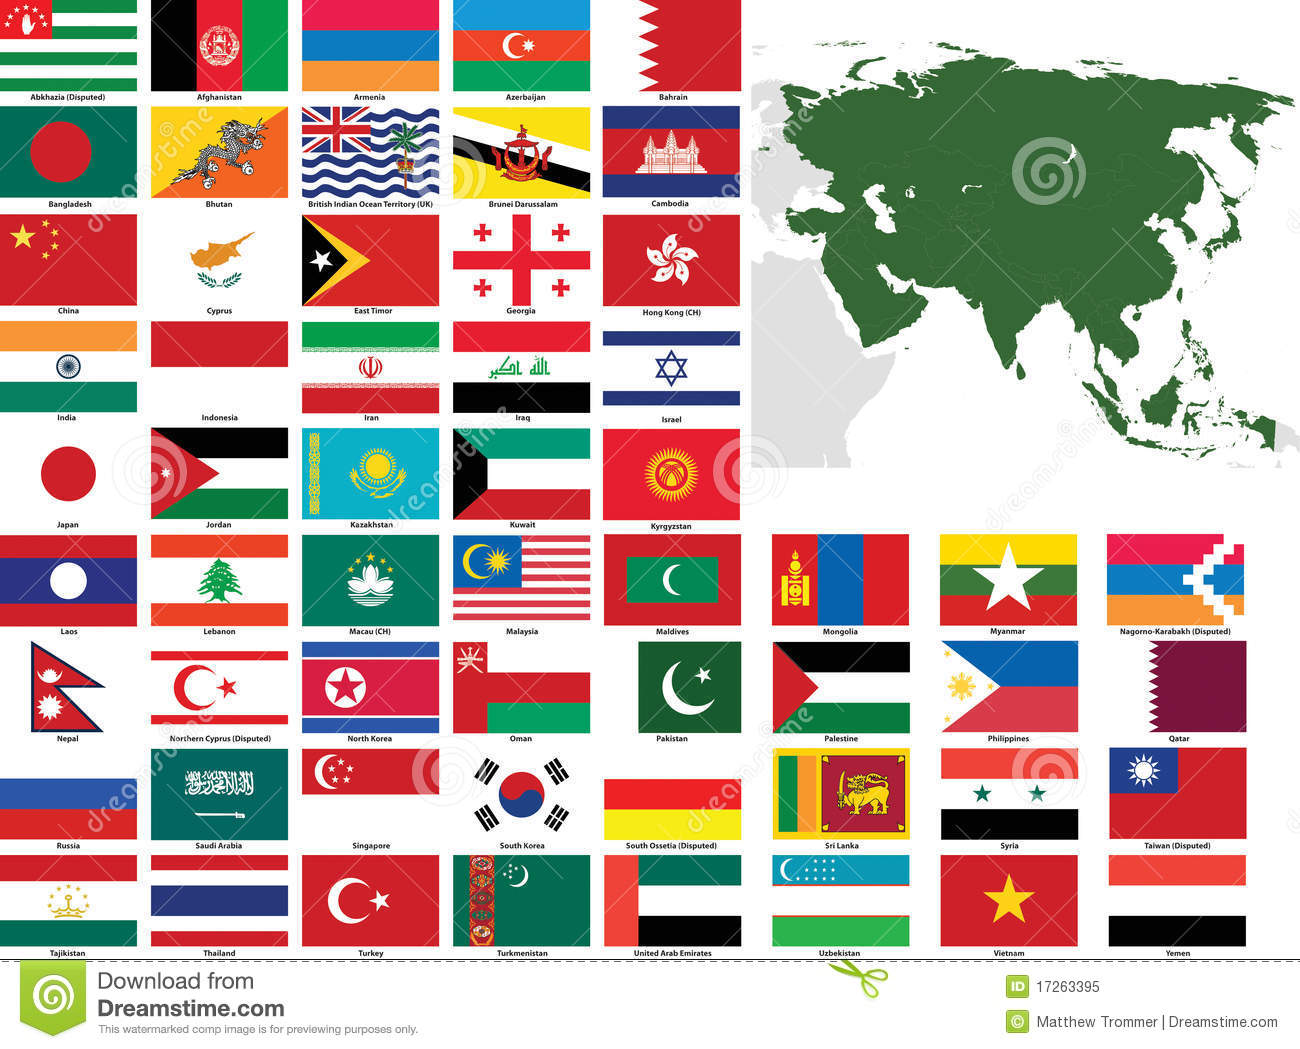 flags-of-the-world-with-names-list